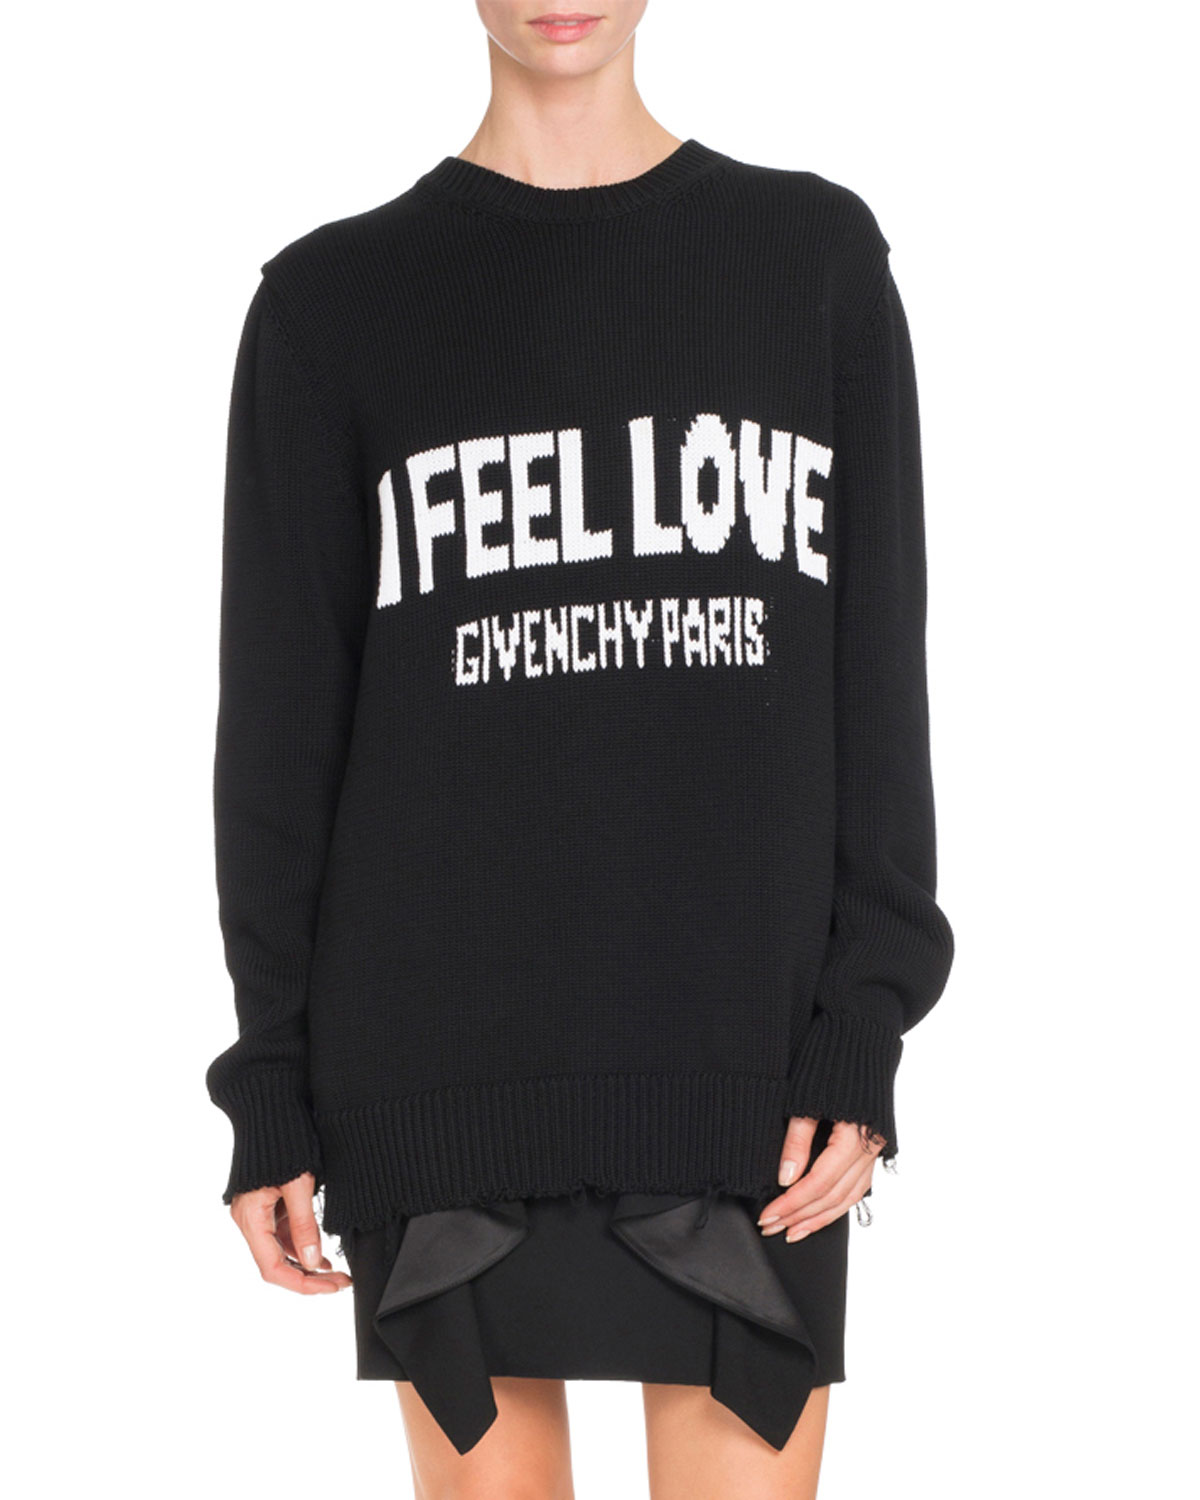 a51966c8 Givenchy I Feel Love Graphic Sweater, Black   Neiman Marcus